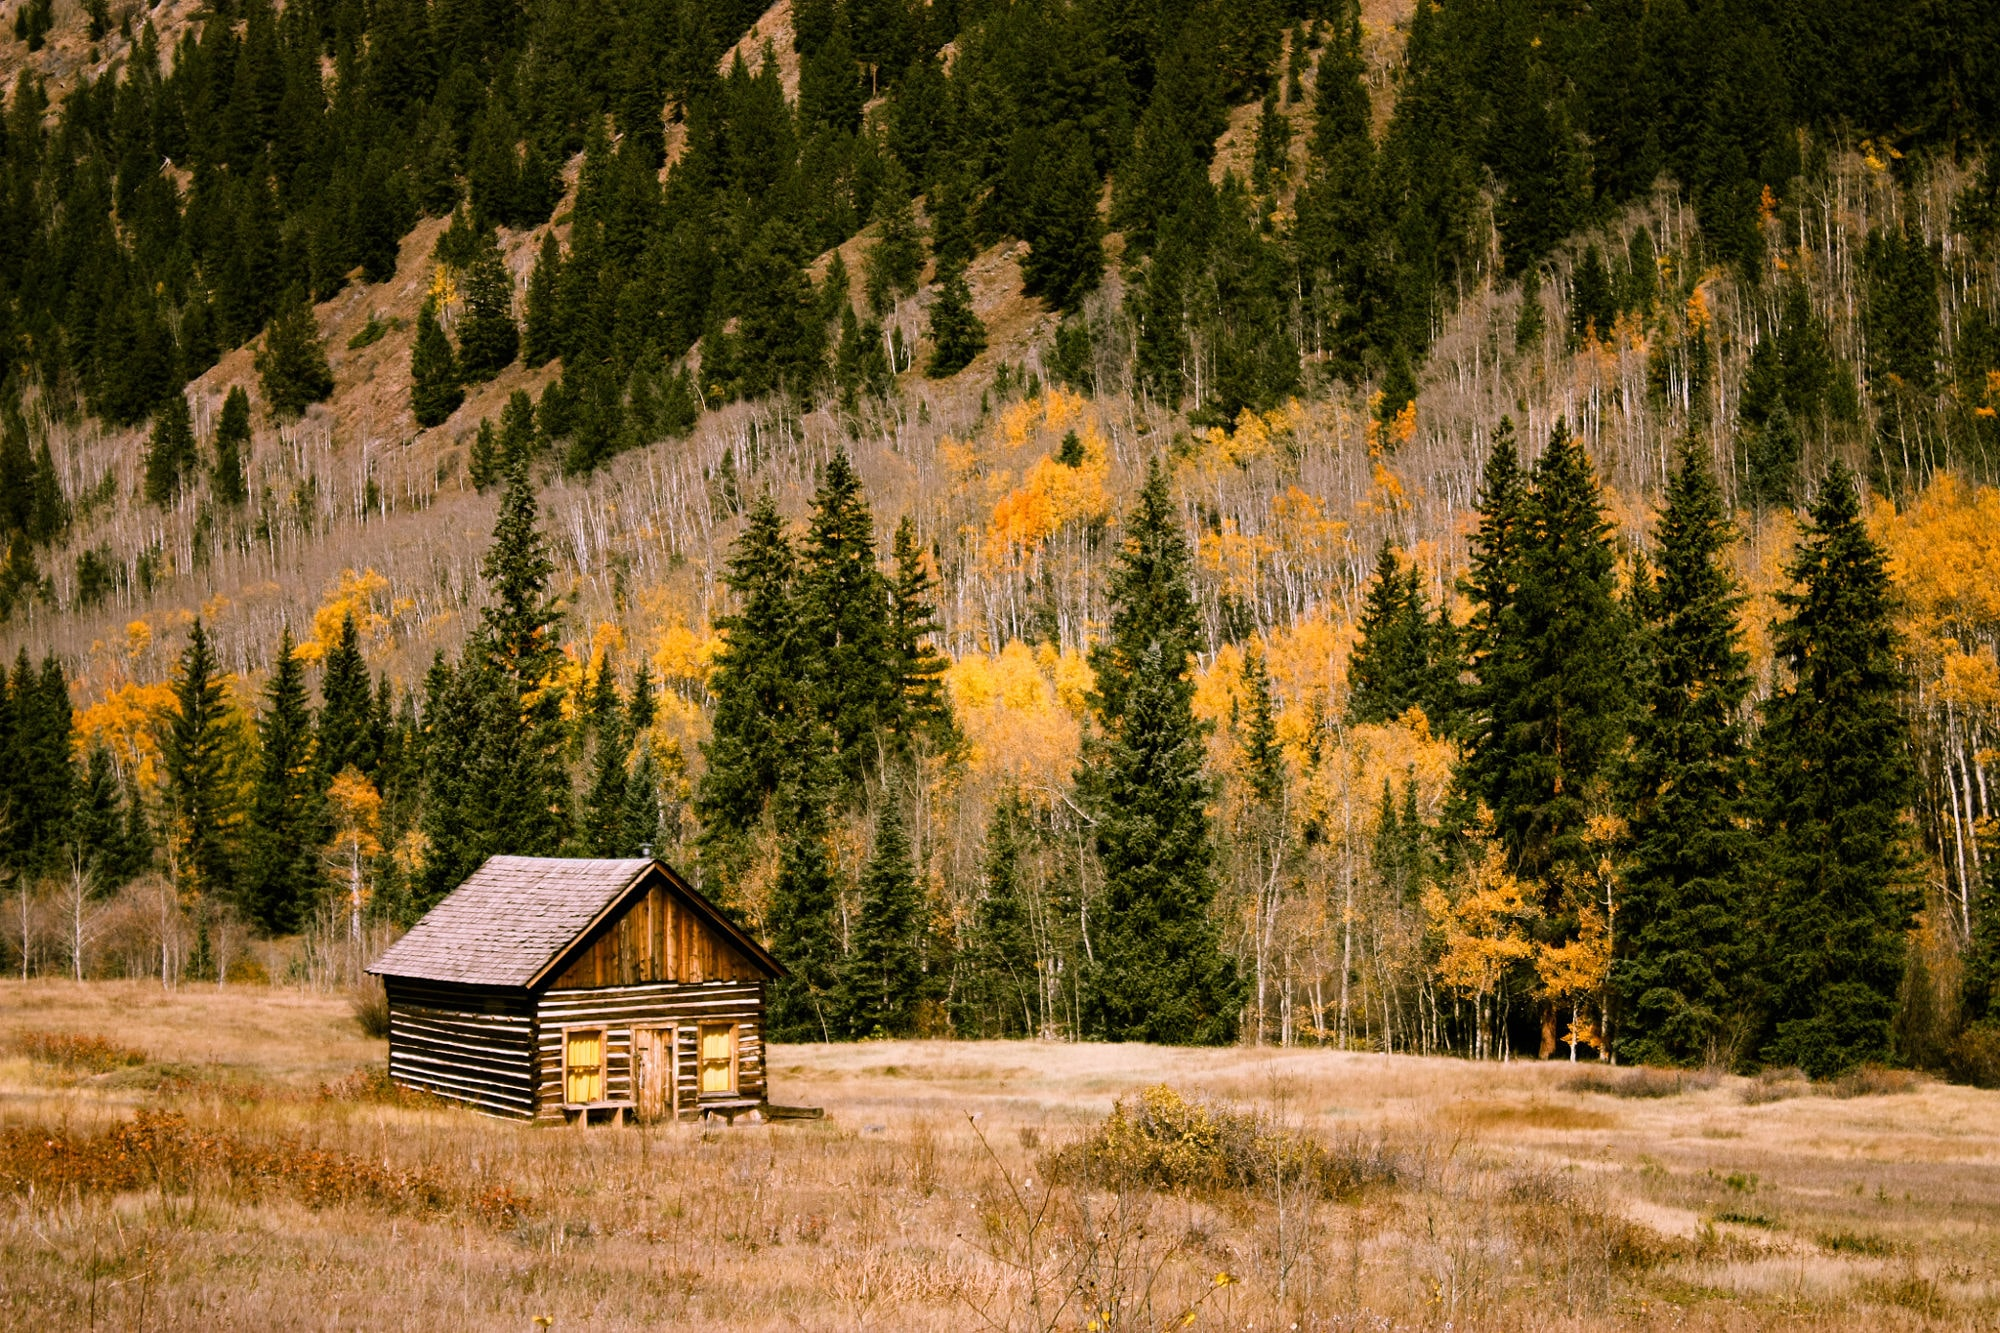 A lone log cabin at the foot of a wooded mountain